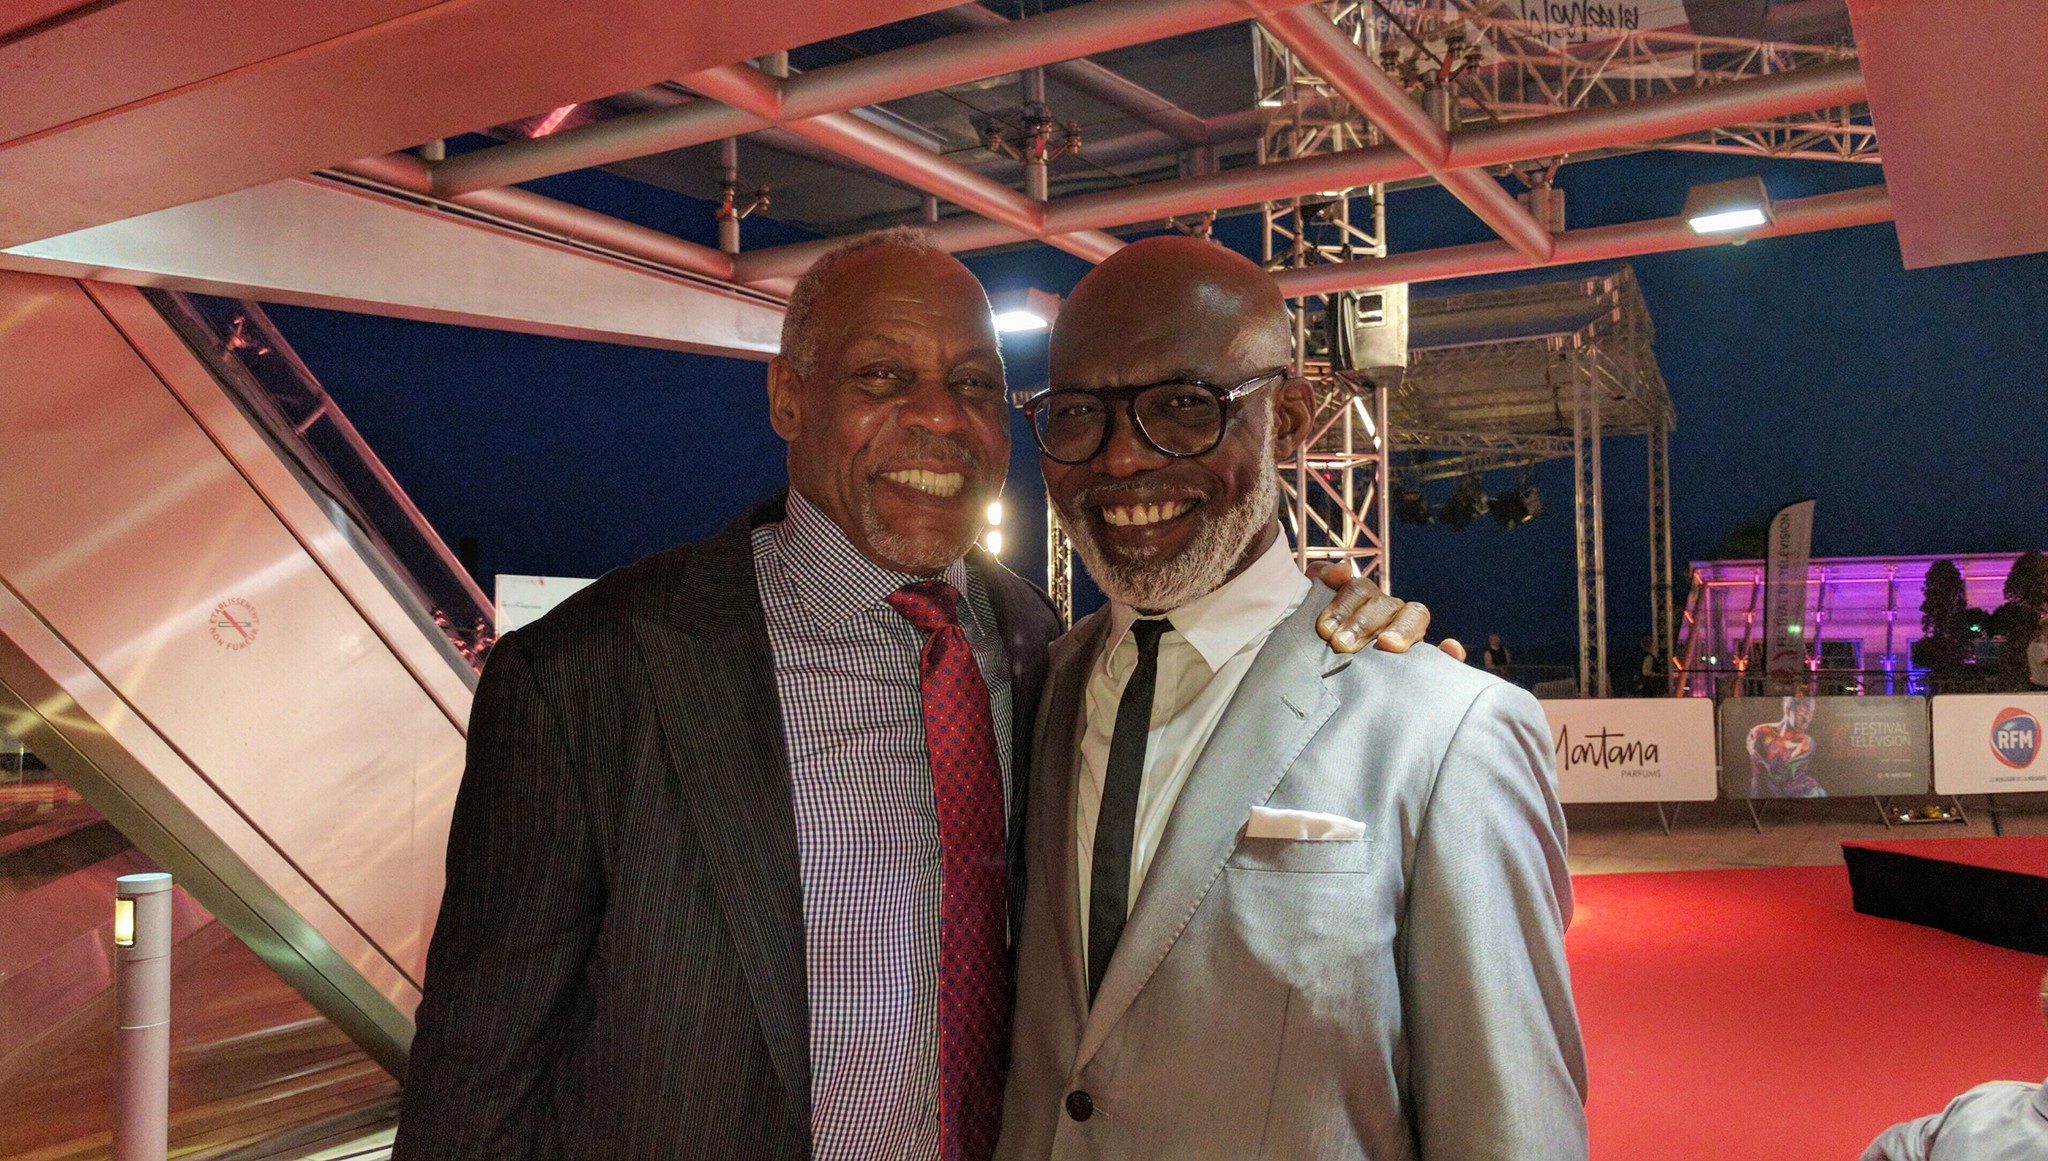 Danny Glover and Eriq Ebouaney au Festival Montecarlo FTV16 ( photo lobographik)